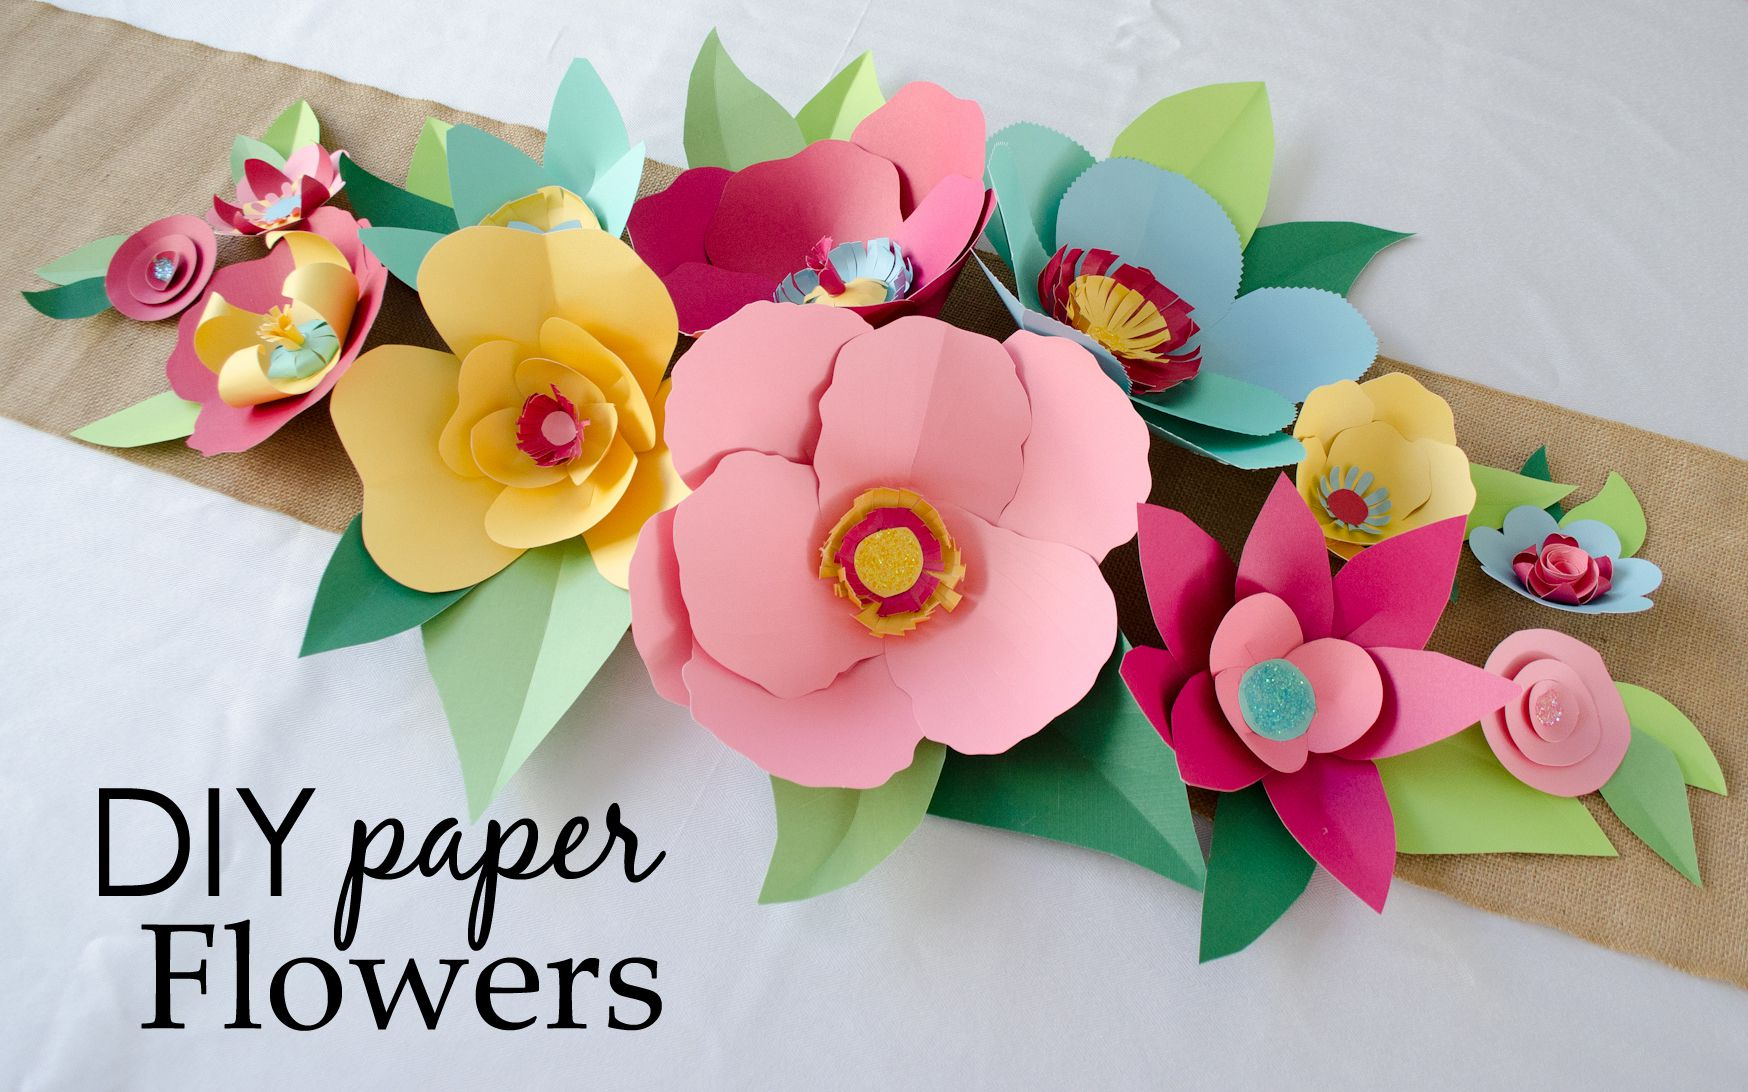 11 diy paper flowers you can make for all occasions mightylinksfo